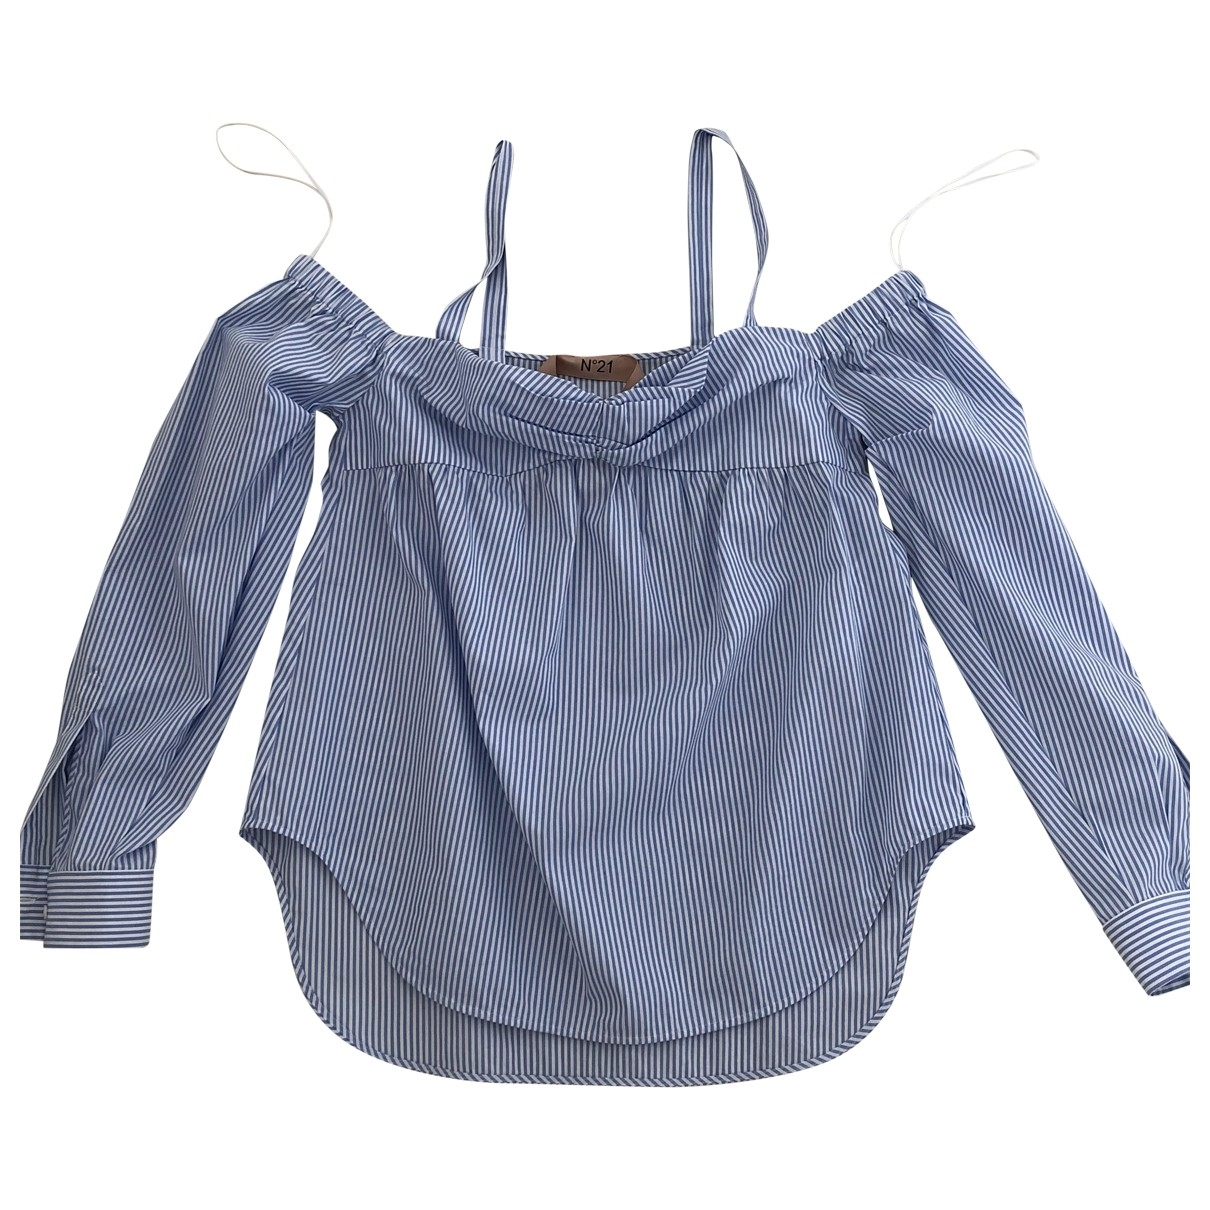 N°21 \N Turquoise Cotton  top for Women 42 IT